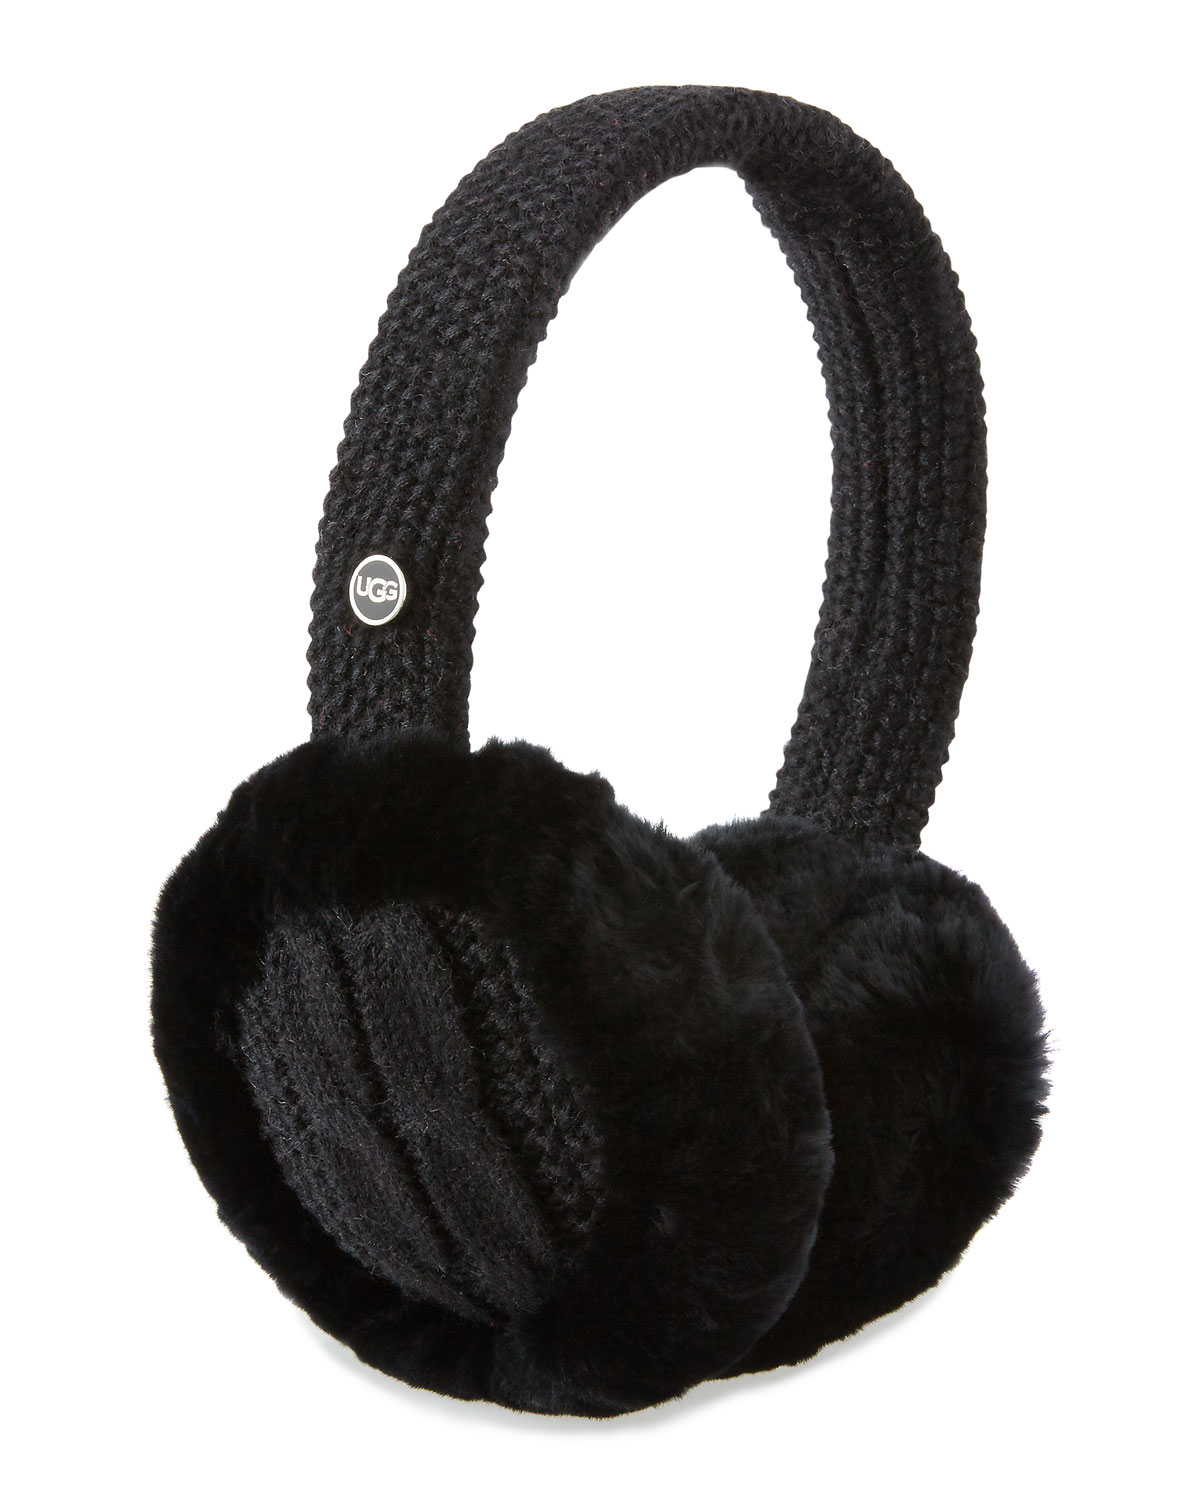 9d1288abc97 Wired Cable-Knit Crochet Earmuffs, Black